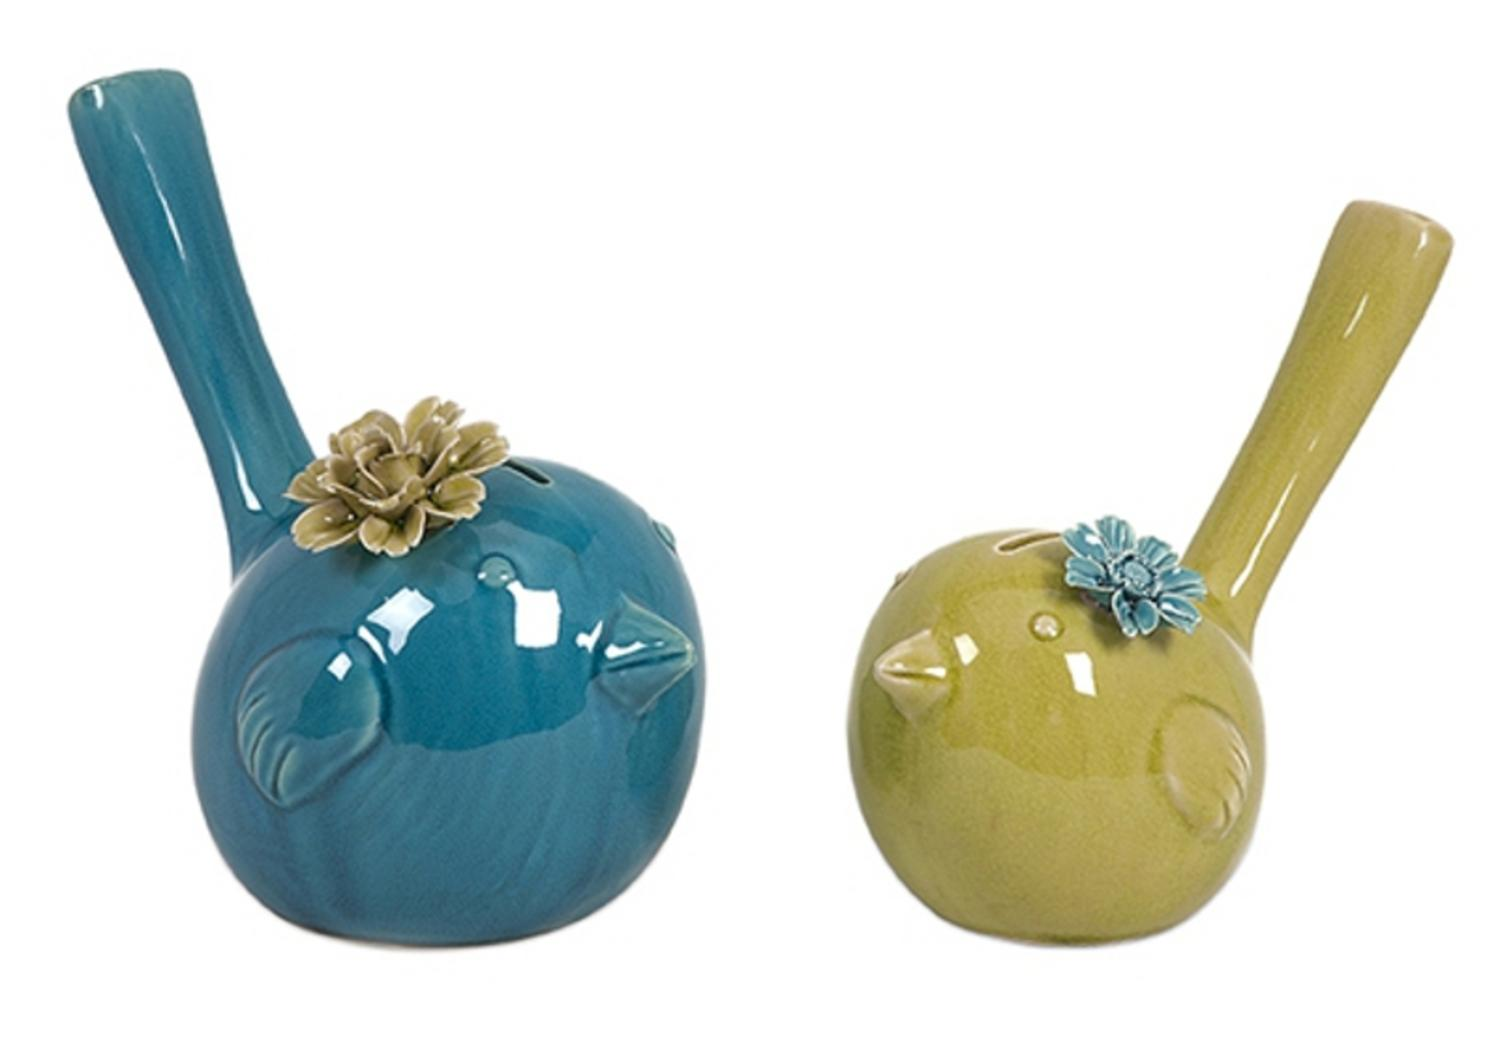 Set of 2 Delightful Trendy Blue and Green Ceramic Bird Piggy Banks by CC Home Furnishings